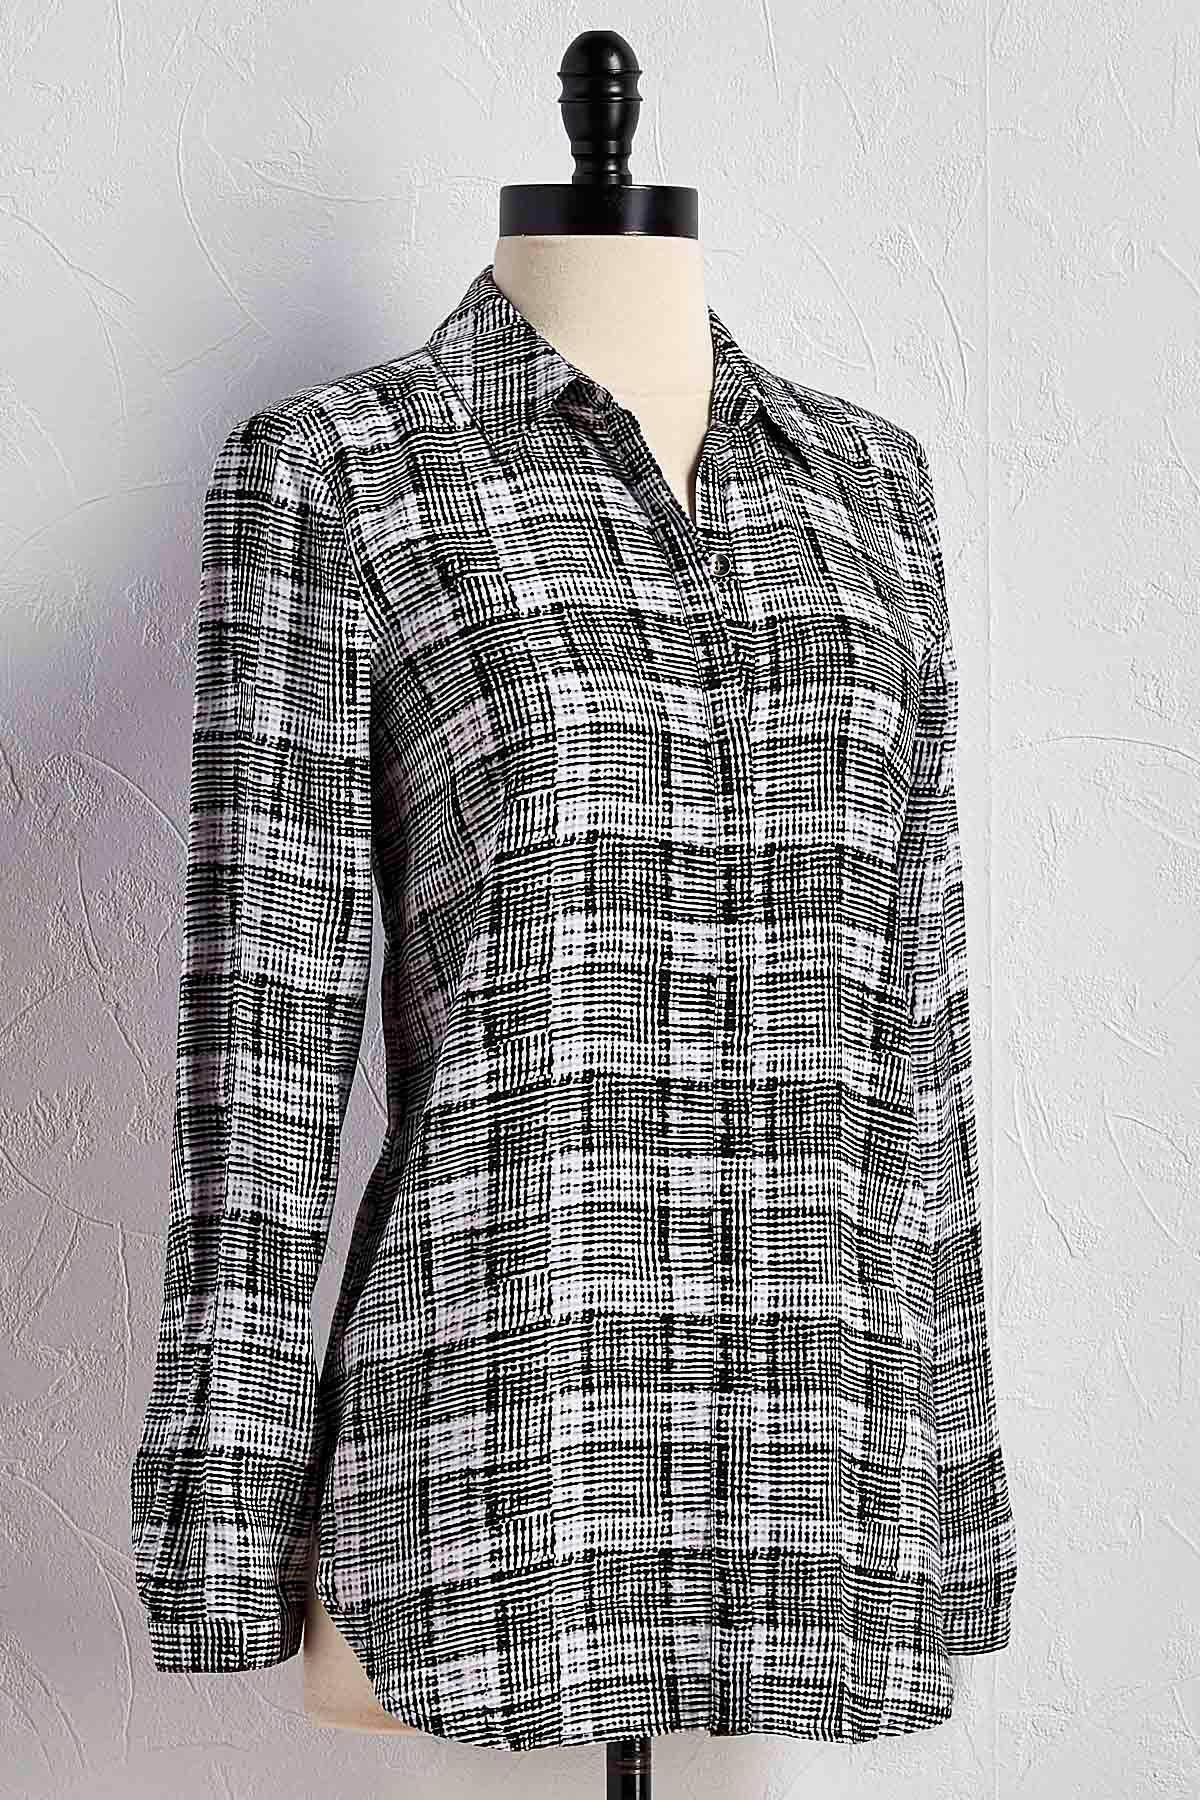 Graphic Grid Plaid Button Down Shirt